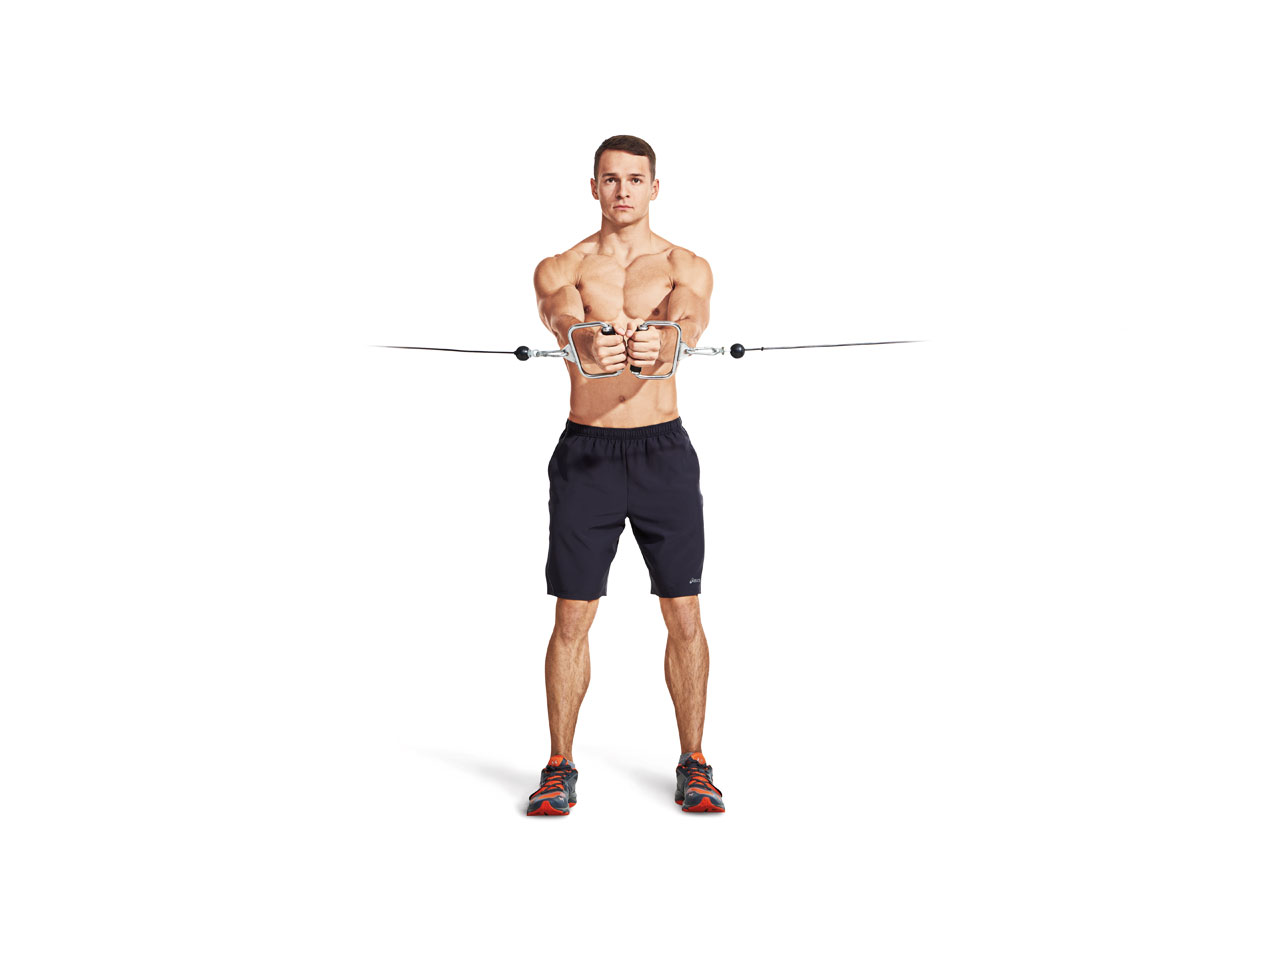 cable crossover exercise for upper chest